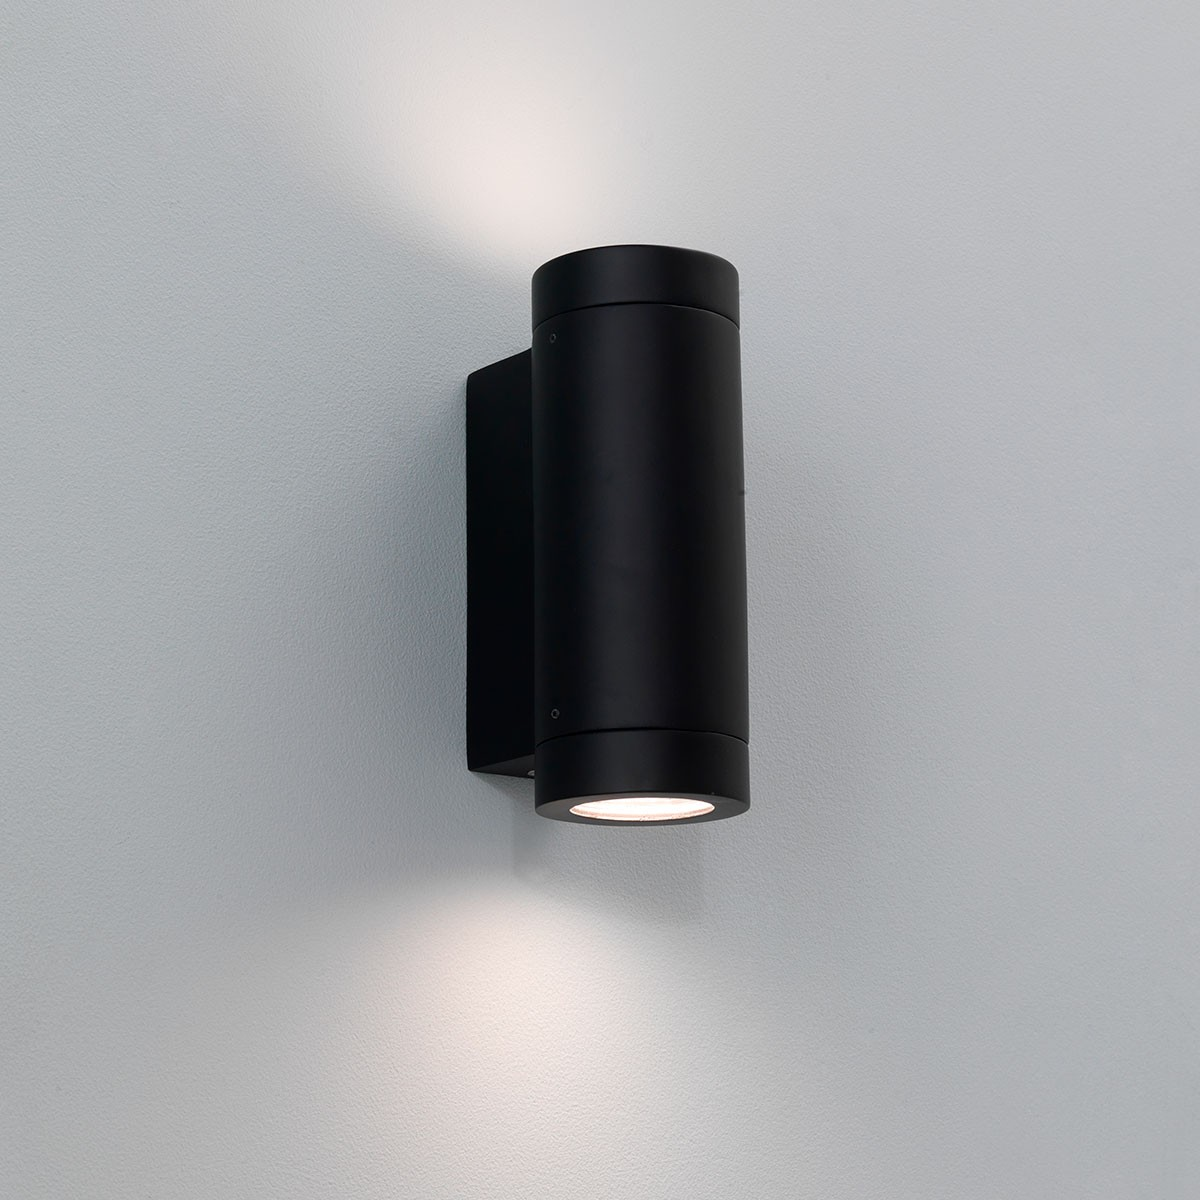 Astro porto plus twin black outdoor wall light at uk for Luminaire exterieur